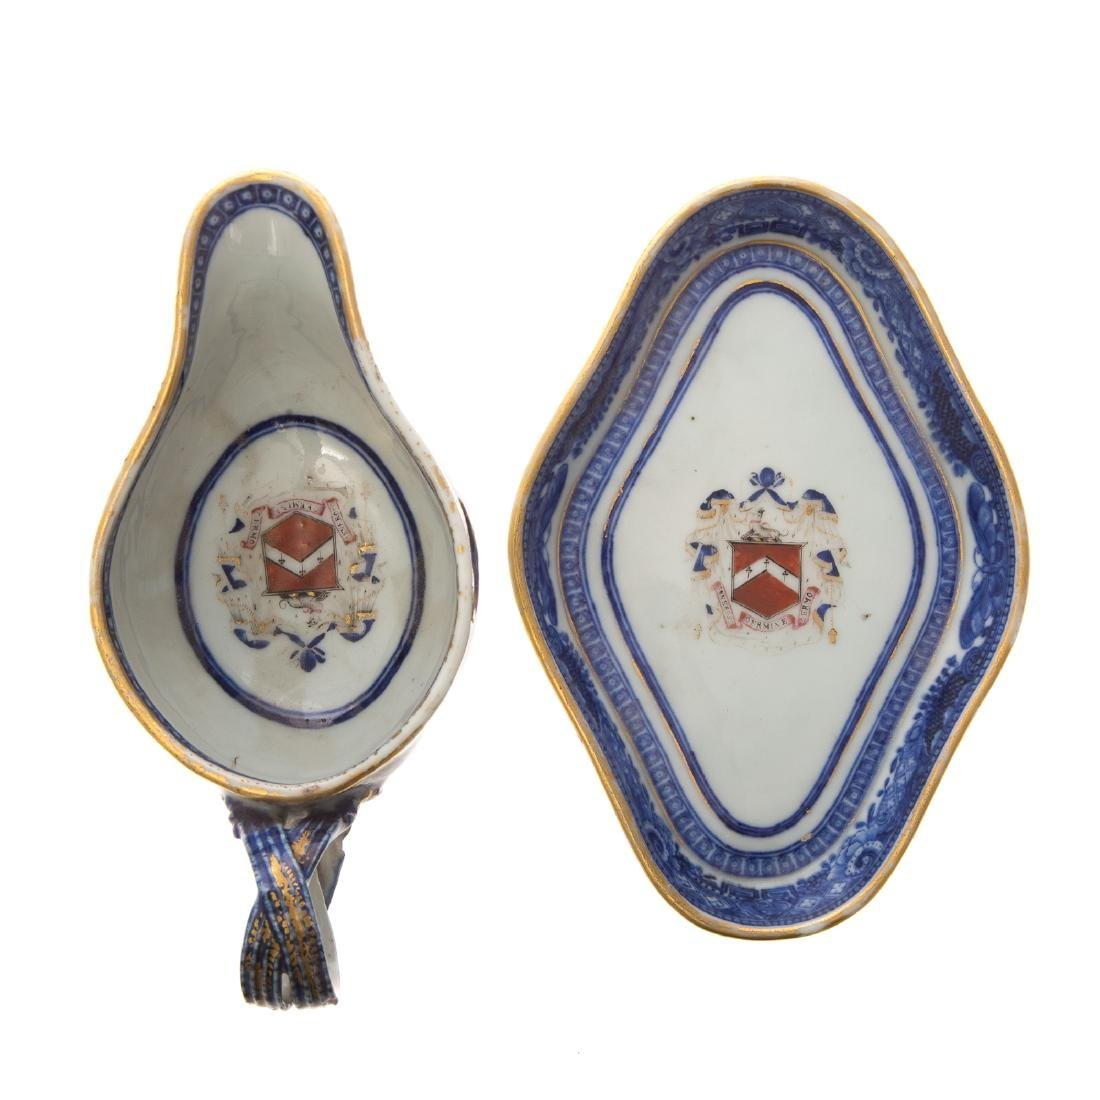 Chinese Export armorial sauce boat & underplate - 3